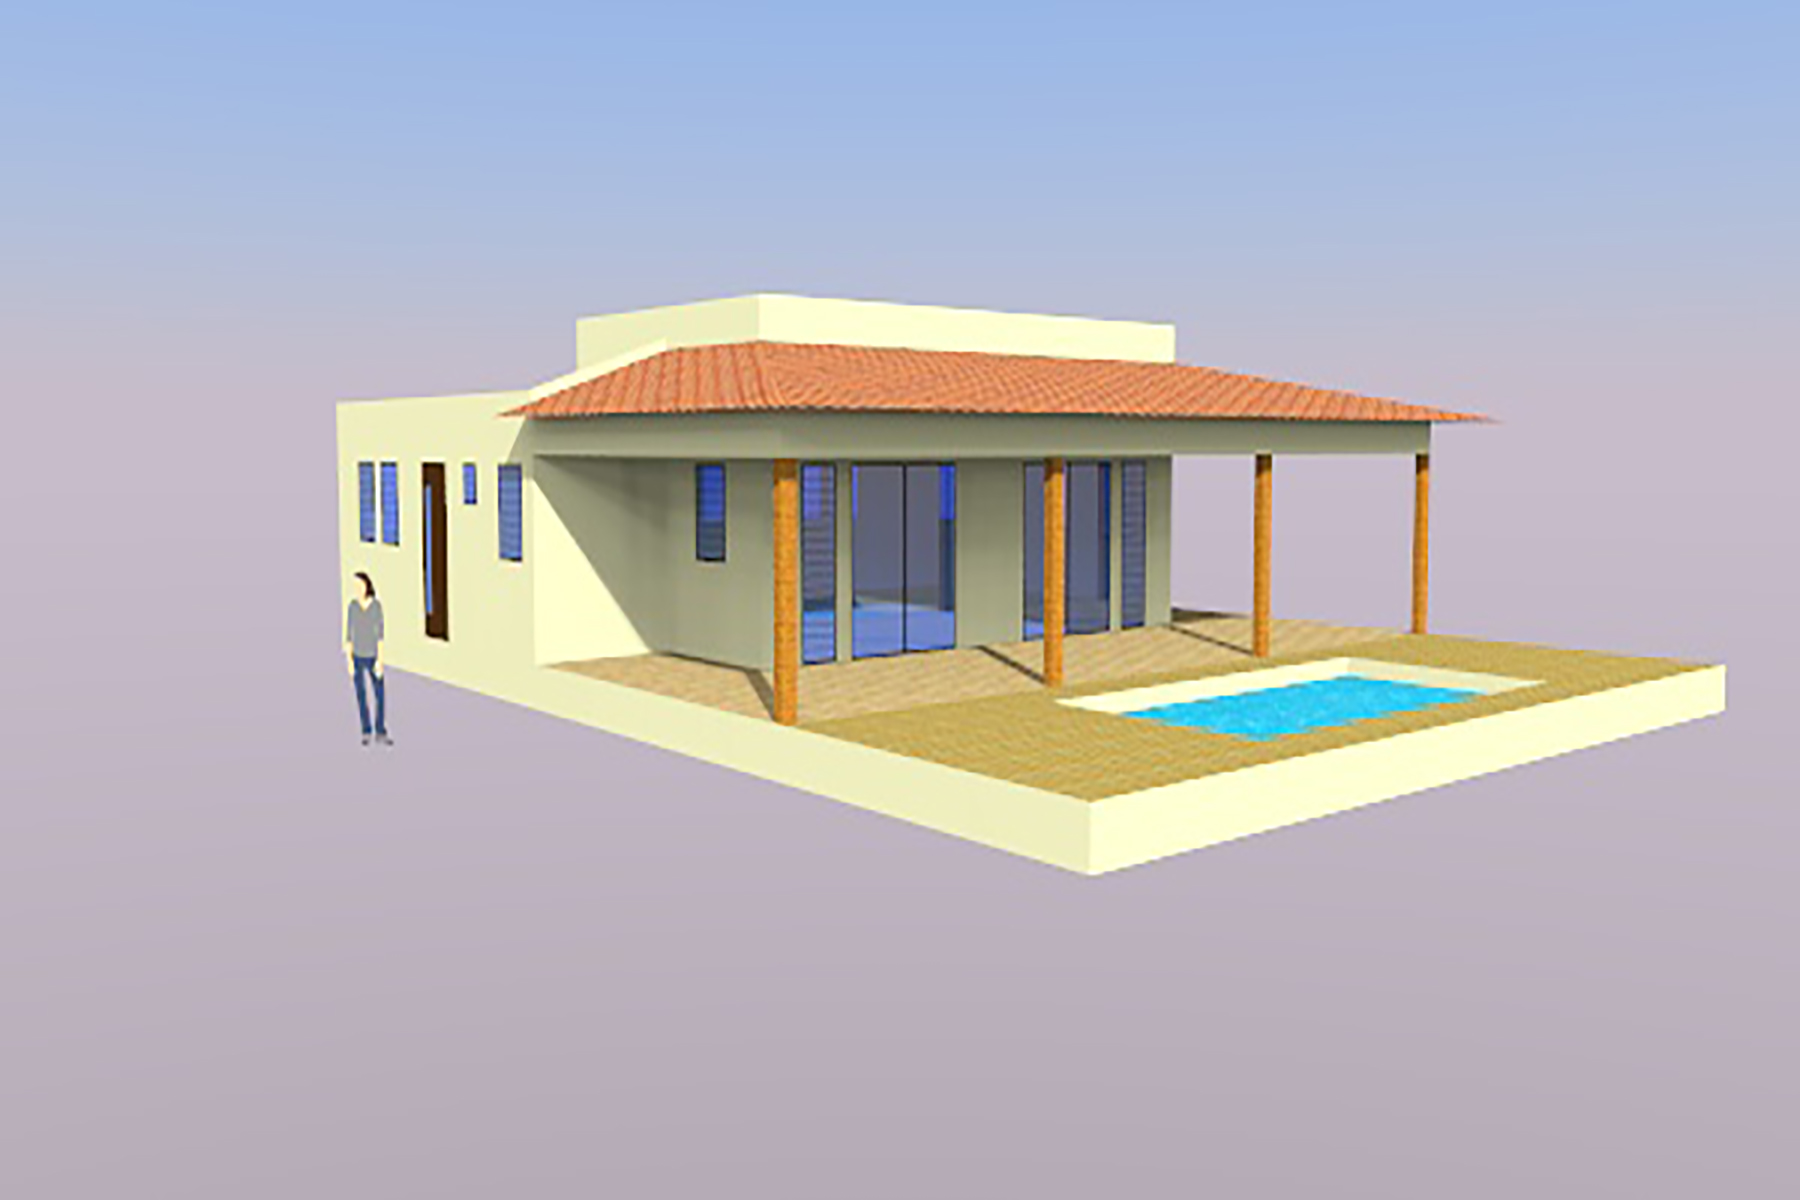 Additional photo for property listing at Villa Krisolito Other Cities In Bonaire, Cities In Bonaire Bonaire